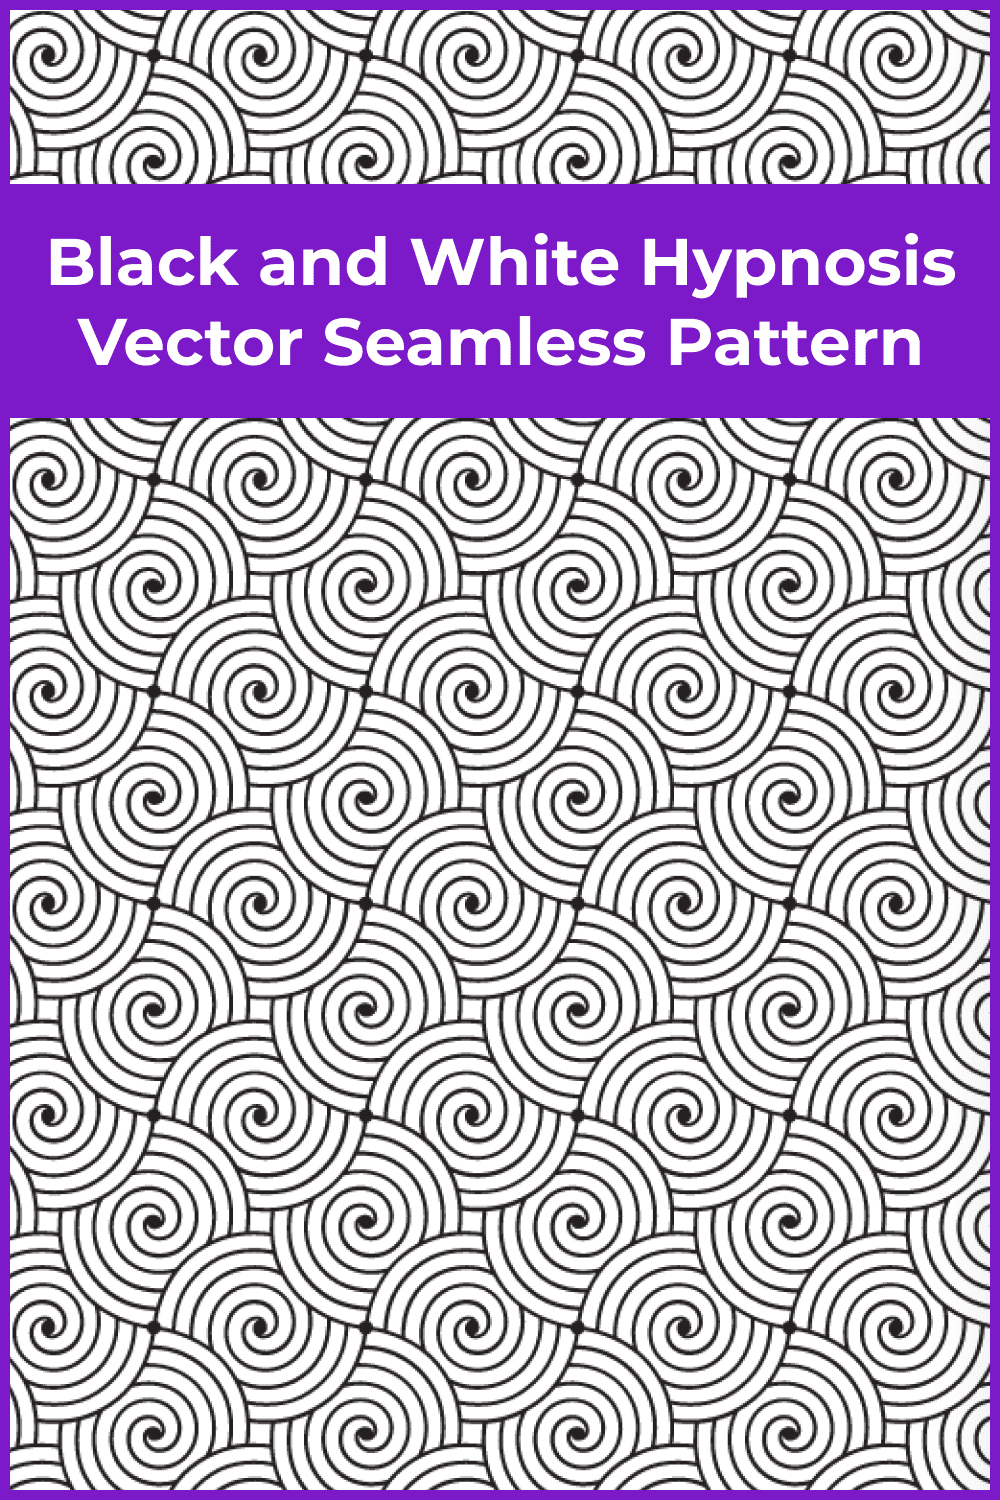 Black and White Hypnosis Vector Seamless Pattern.